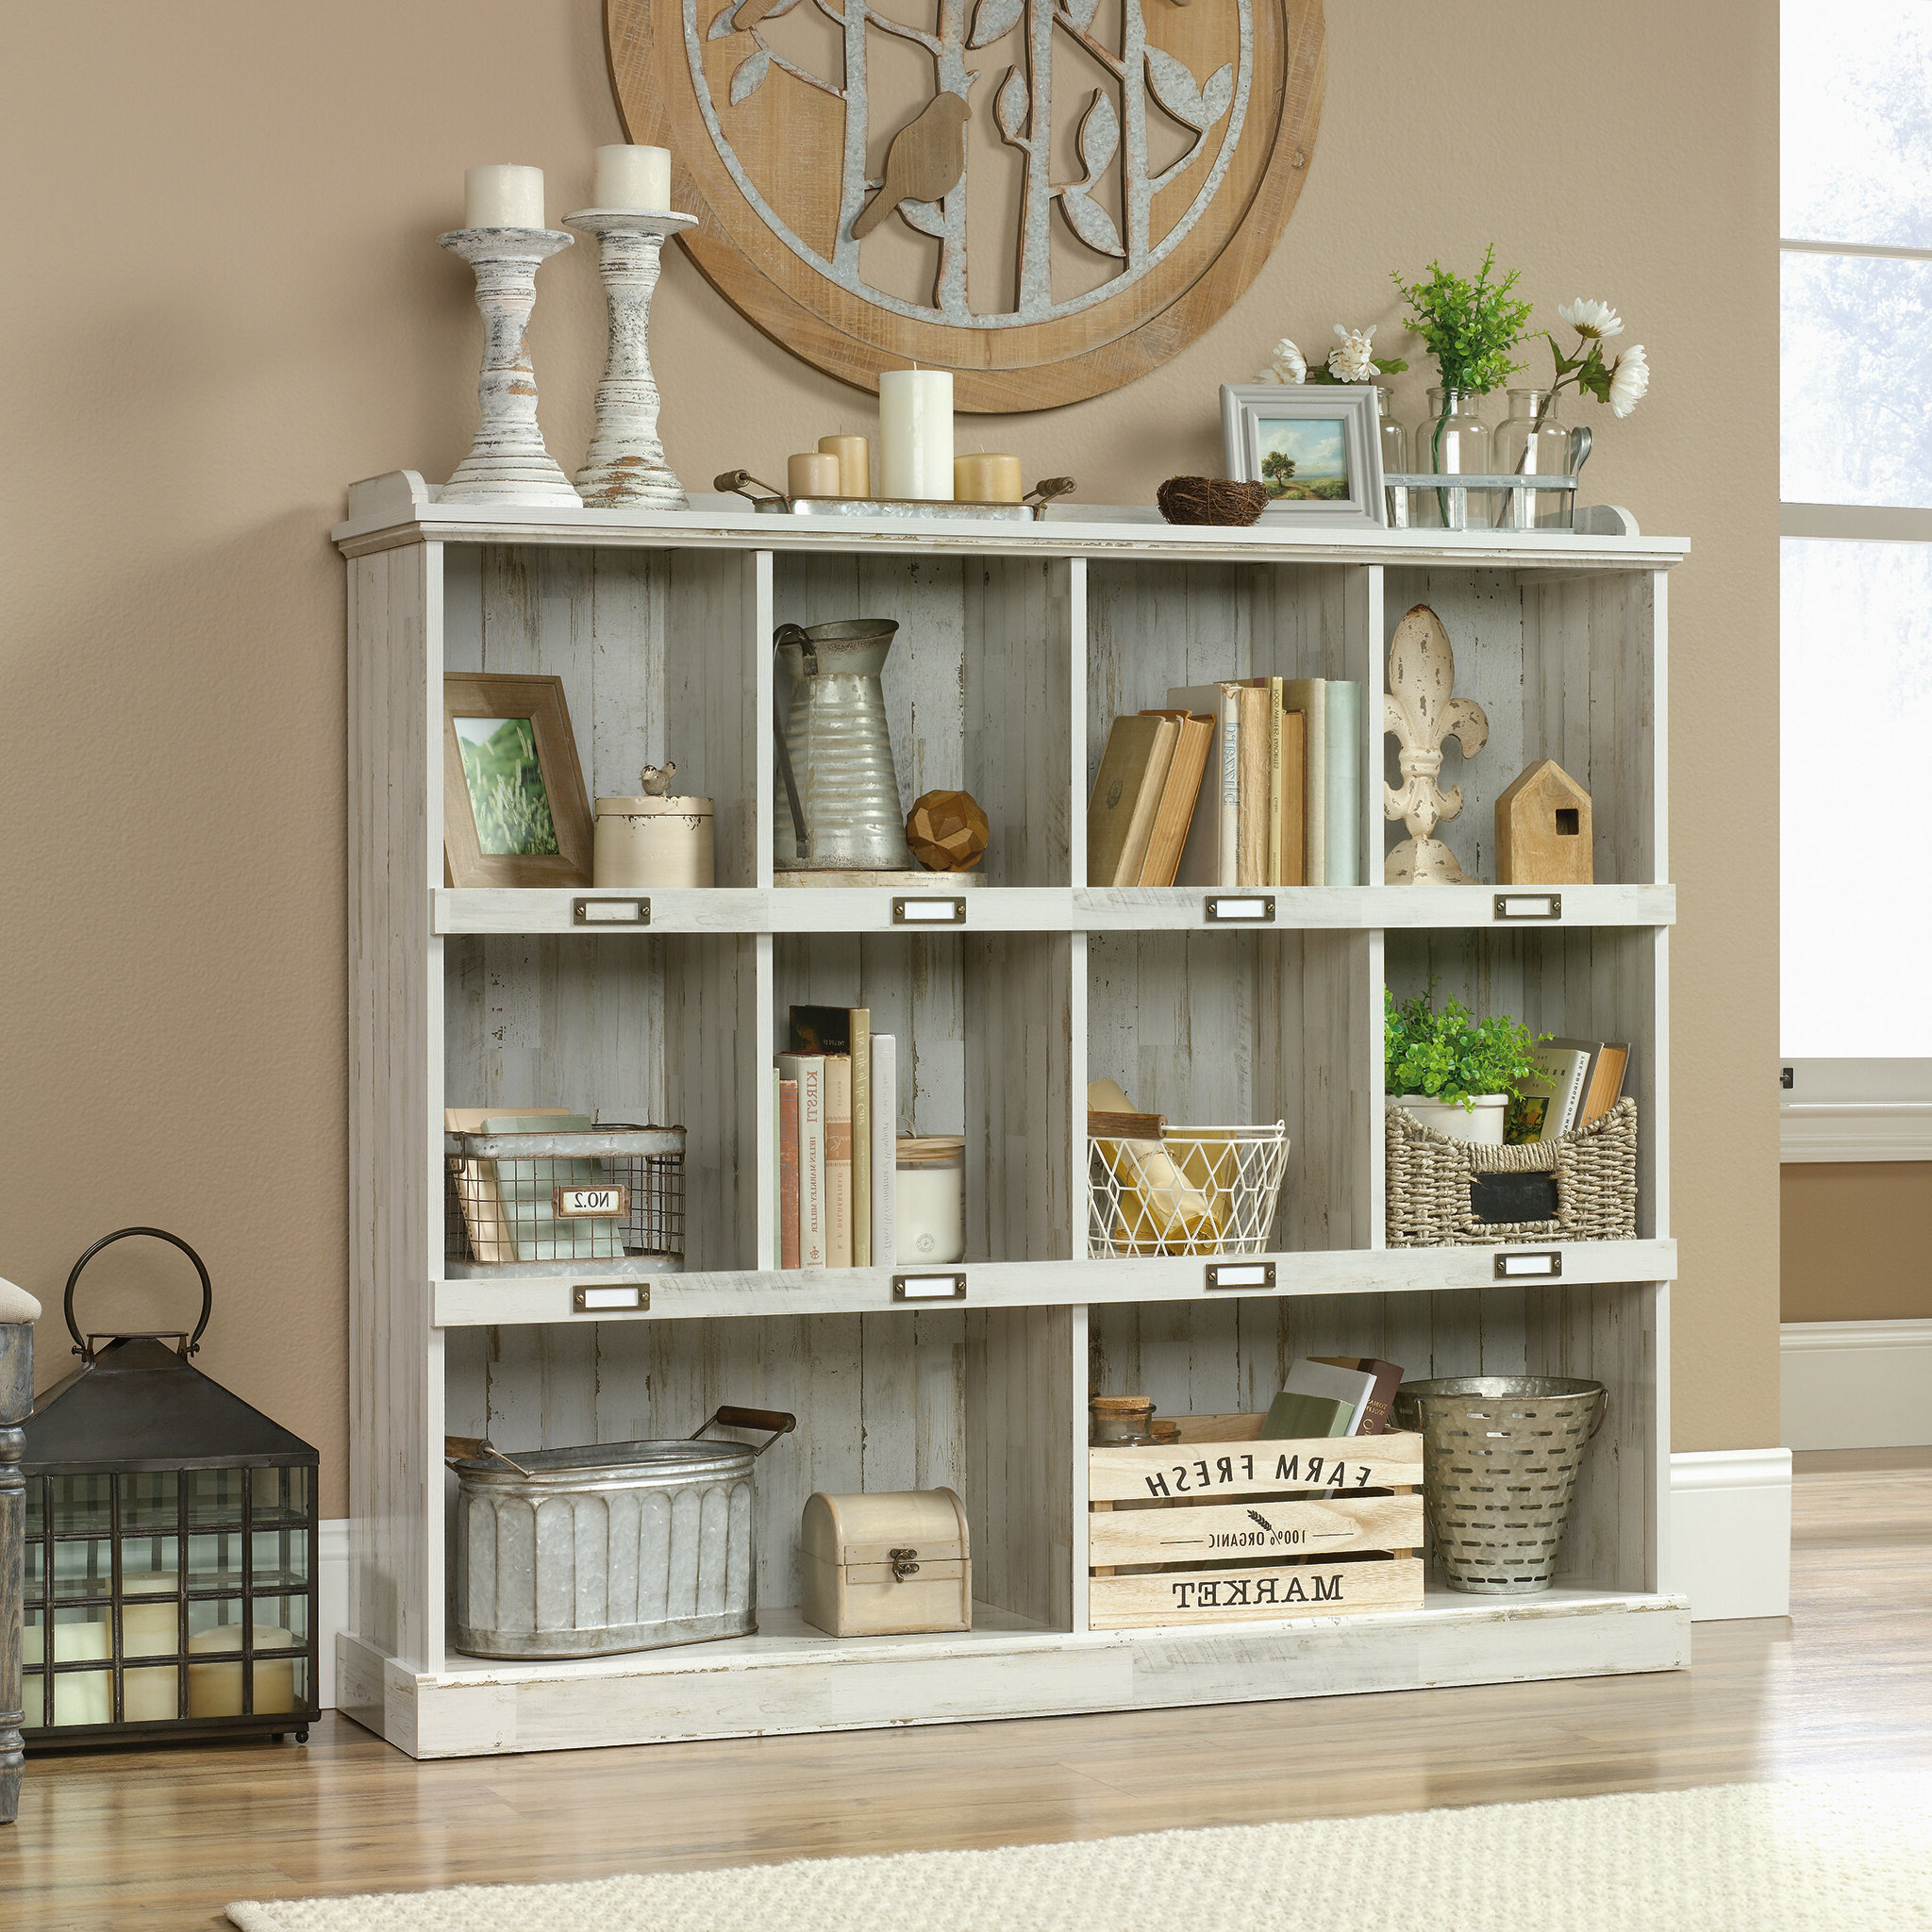 Bowerbank Standard Bookcase With Regard To Preferred Bowerbank Standard Bookcases (View 6 of 20)